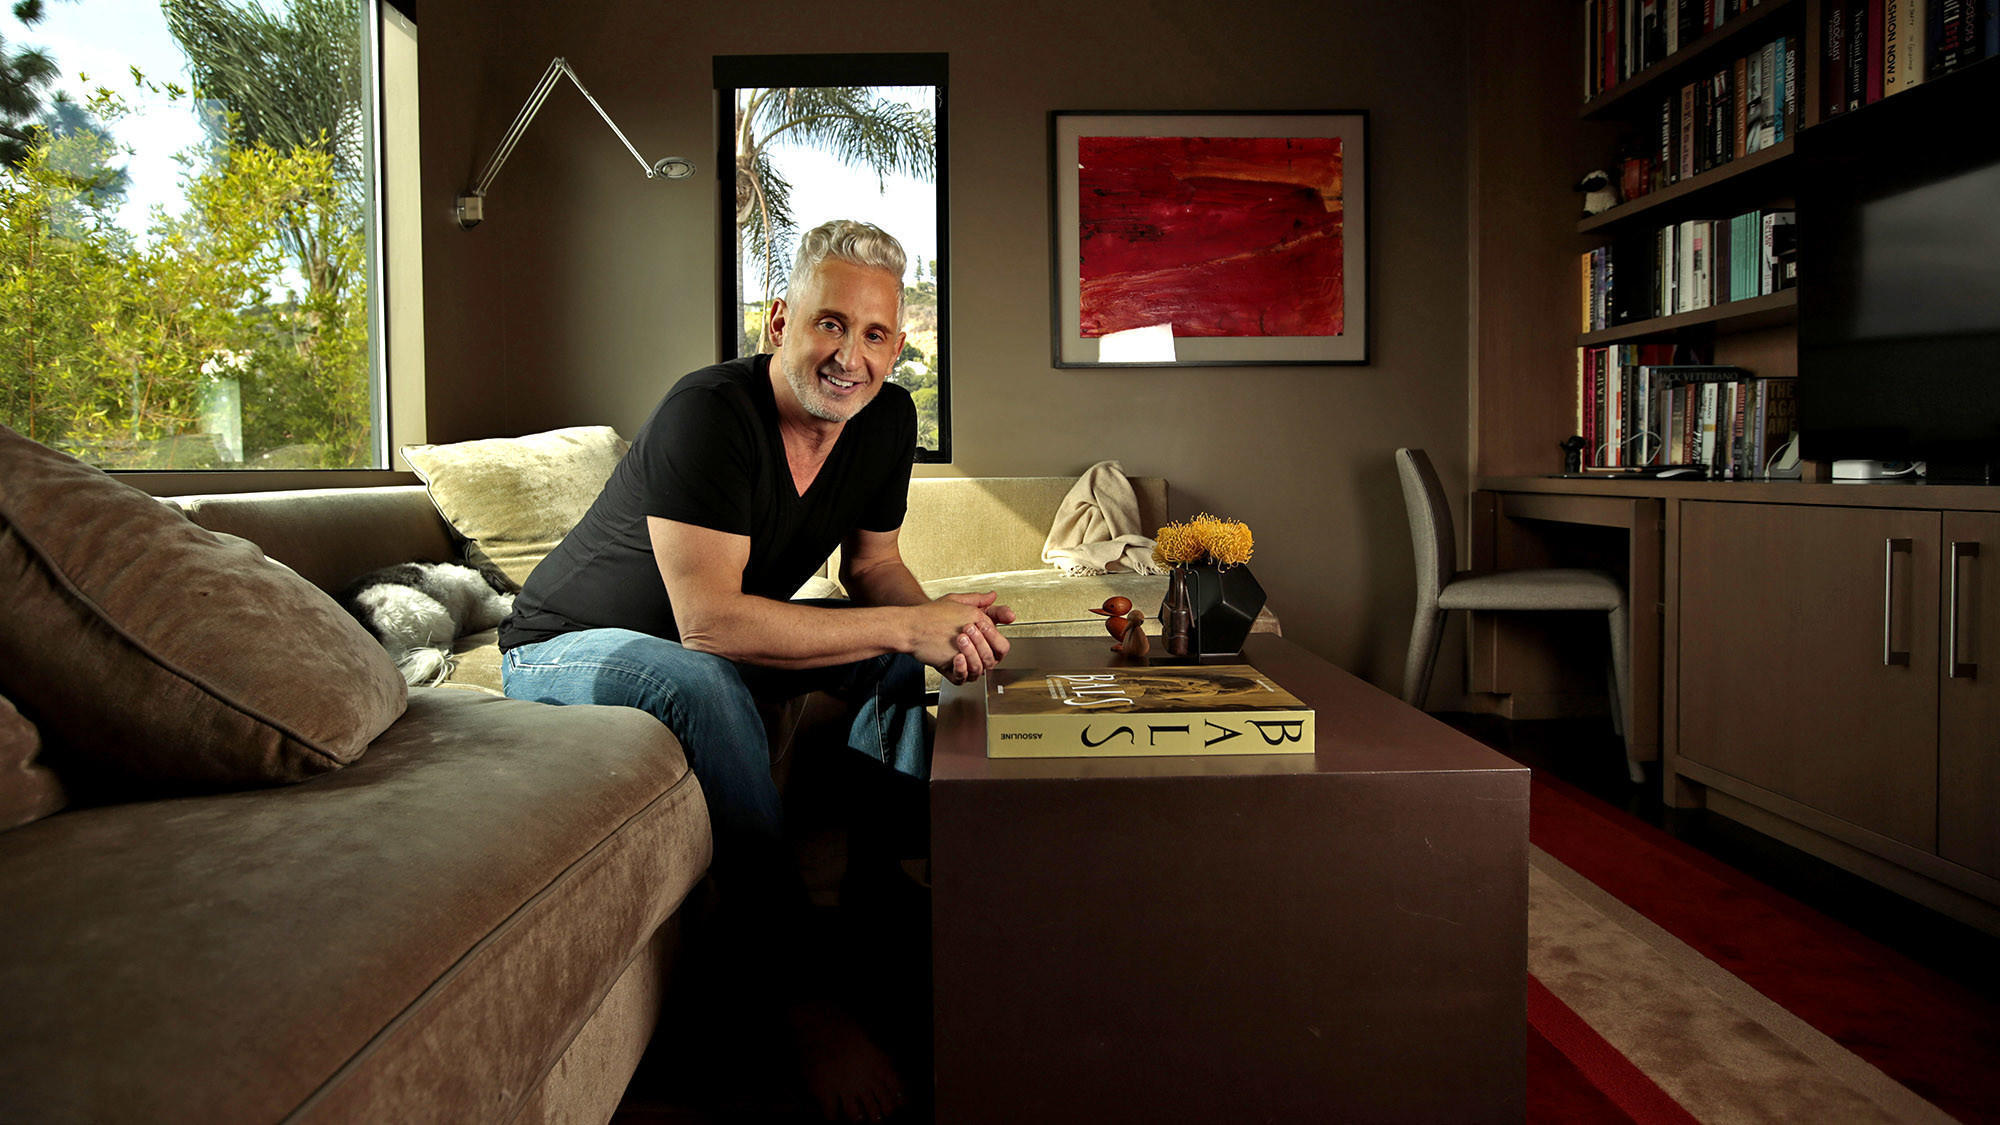 My Favorite Room: Fashion designer David Meister's packed den gets an exemption from minimalism